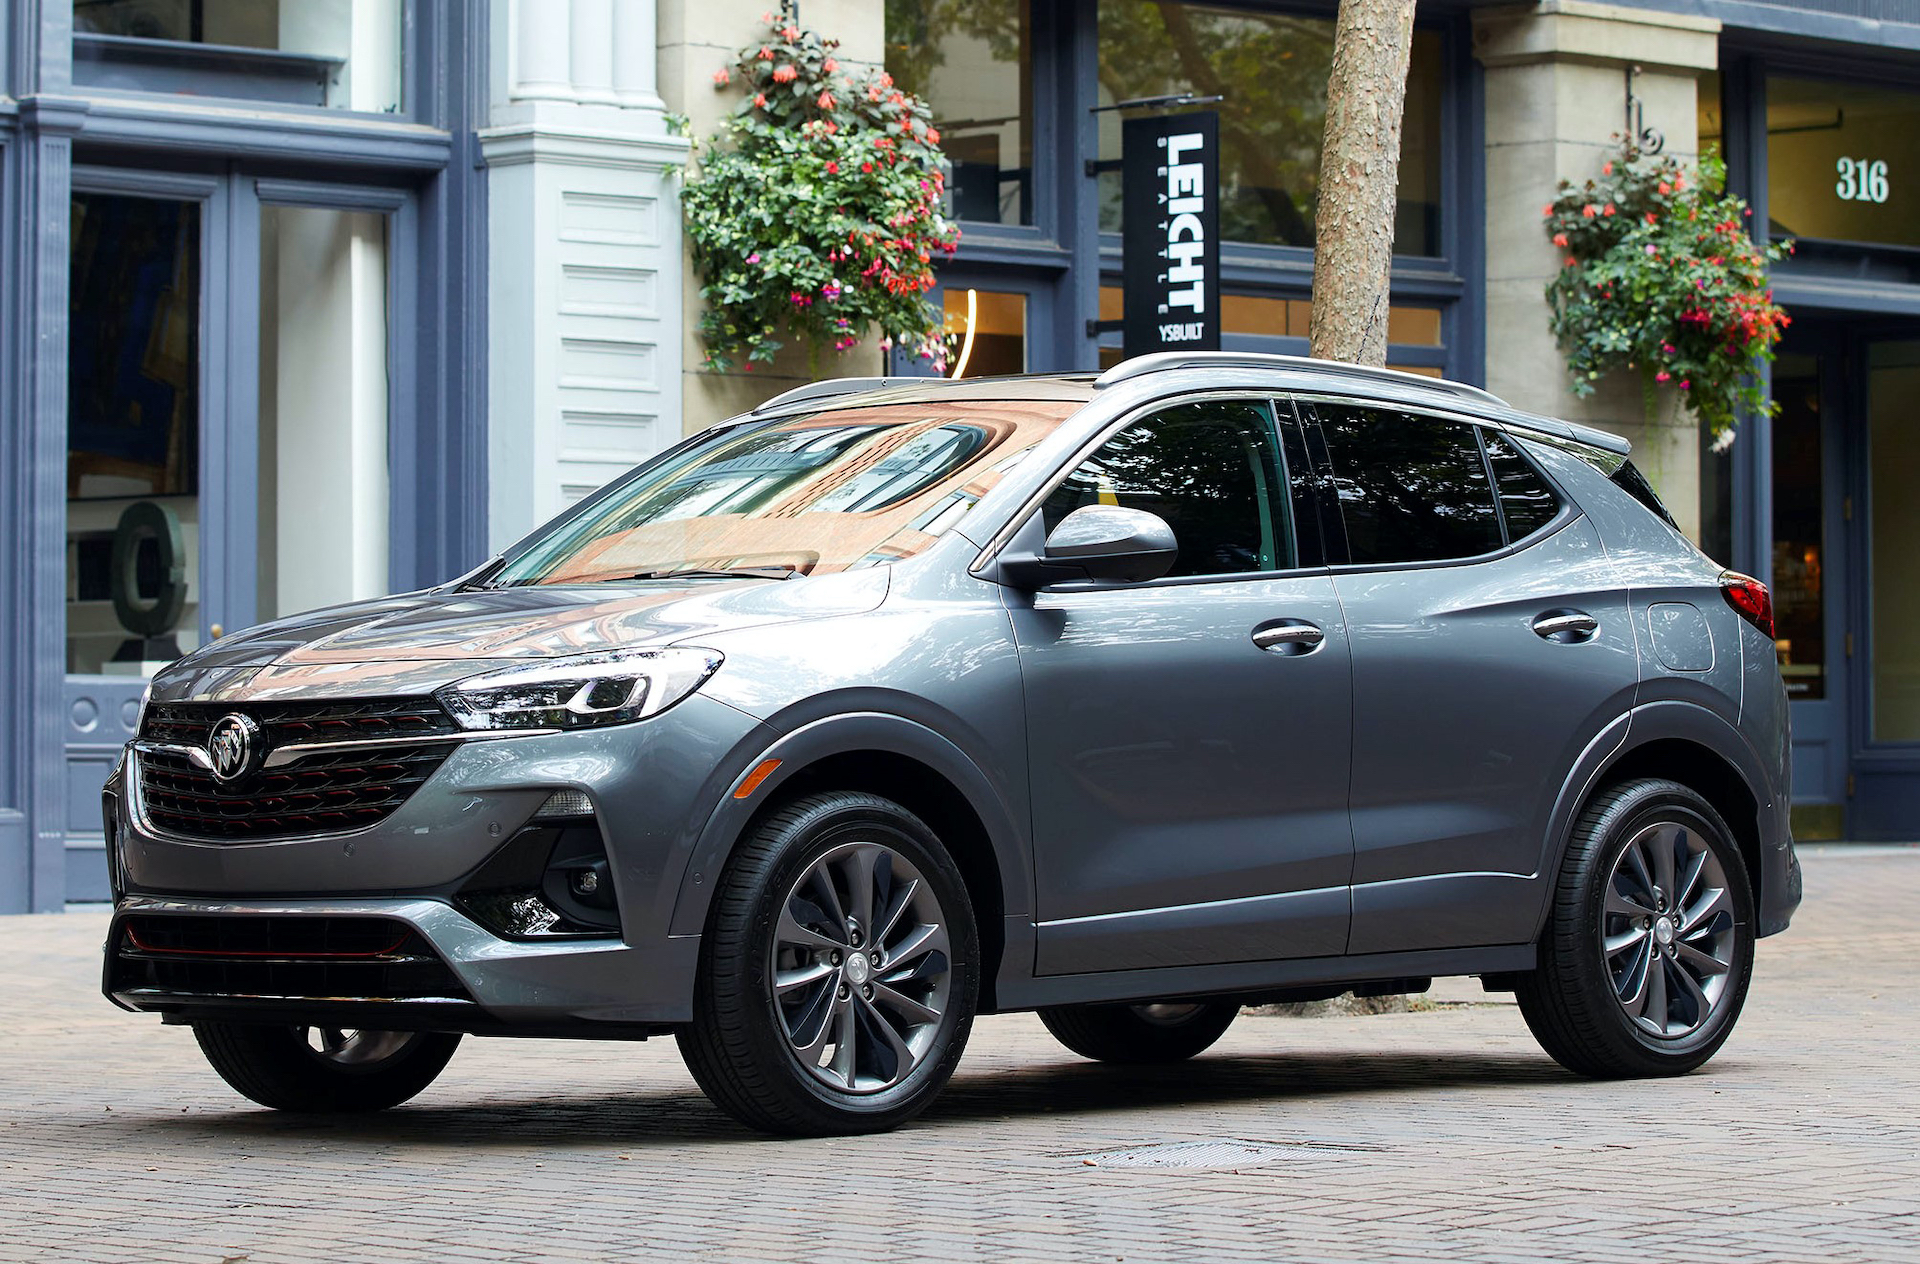 2021 Buick Encore Review, Ratings, Specs, Prices, And Photos When Is The 2021 Buick Encore Gx Coming Out